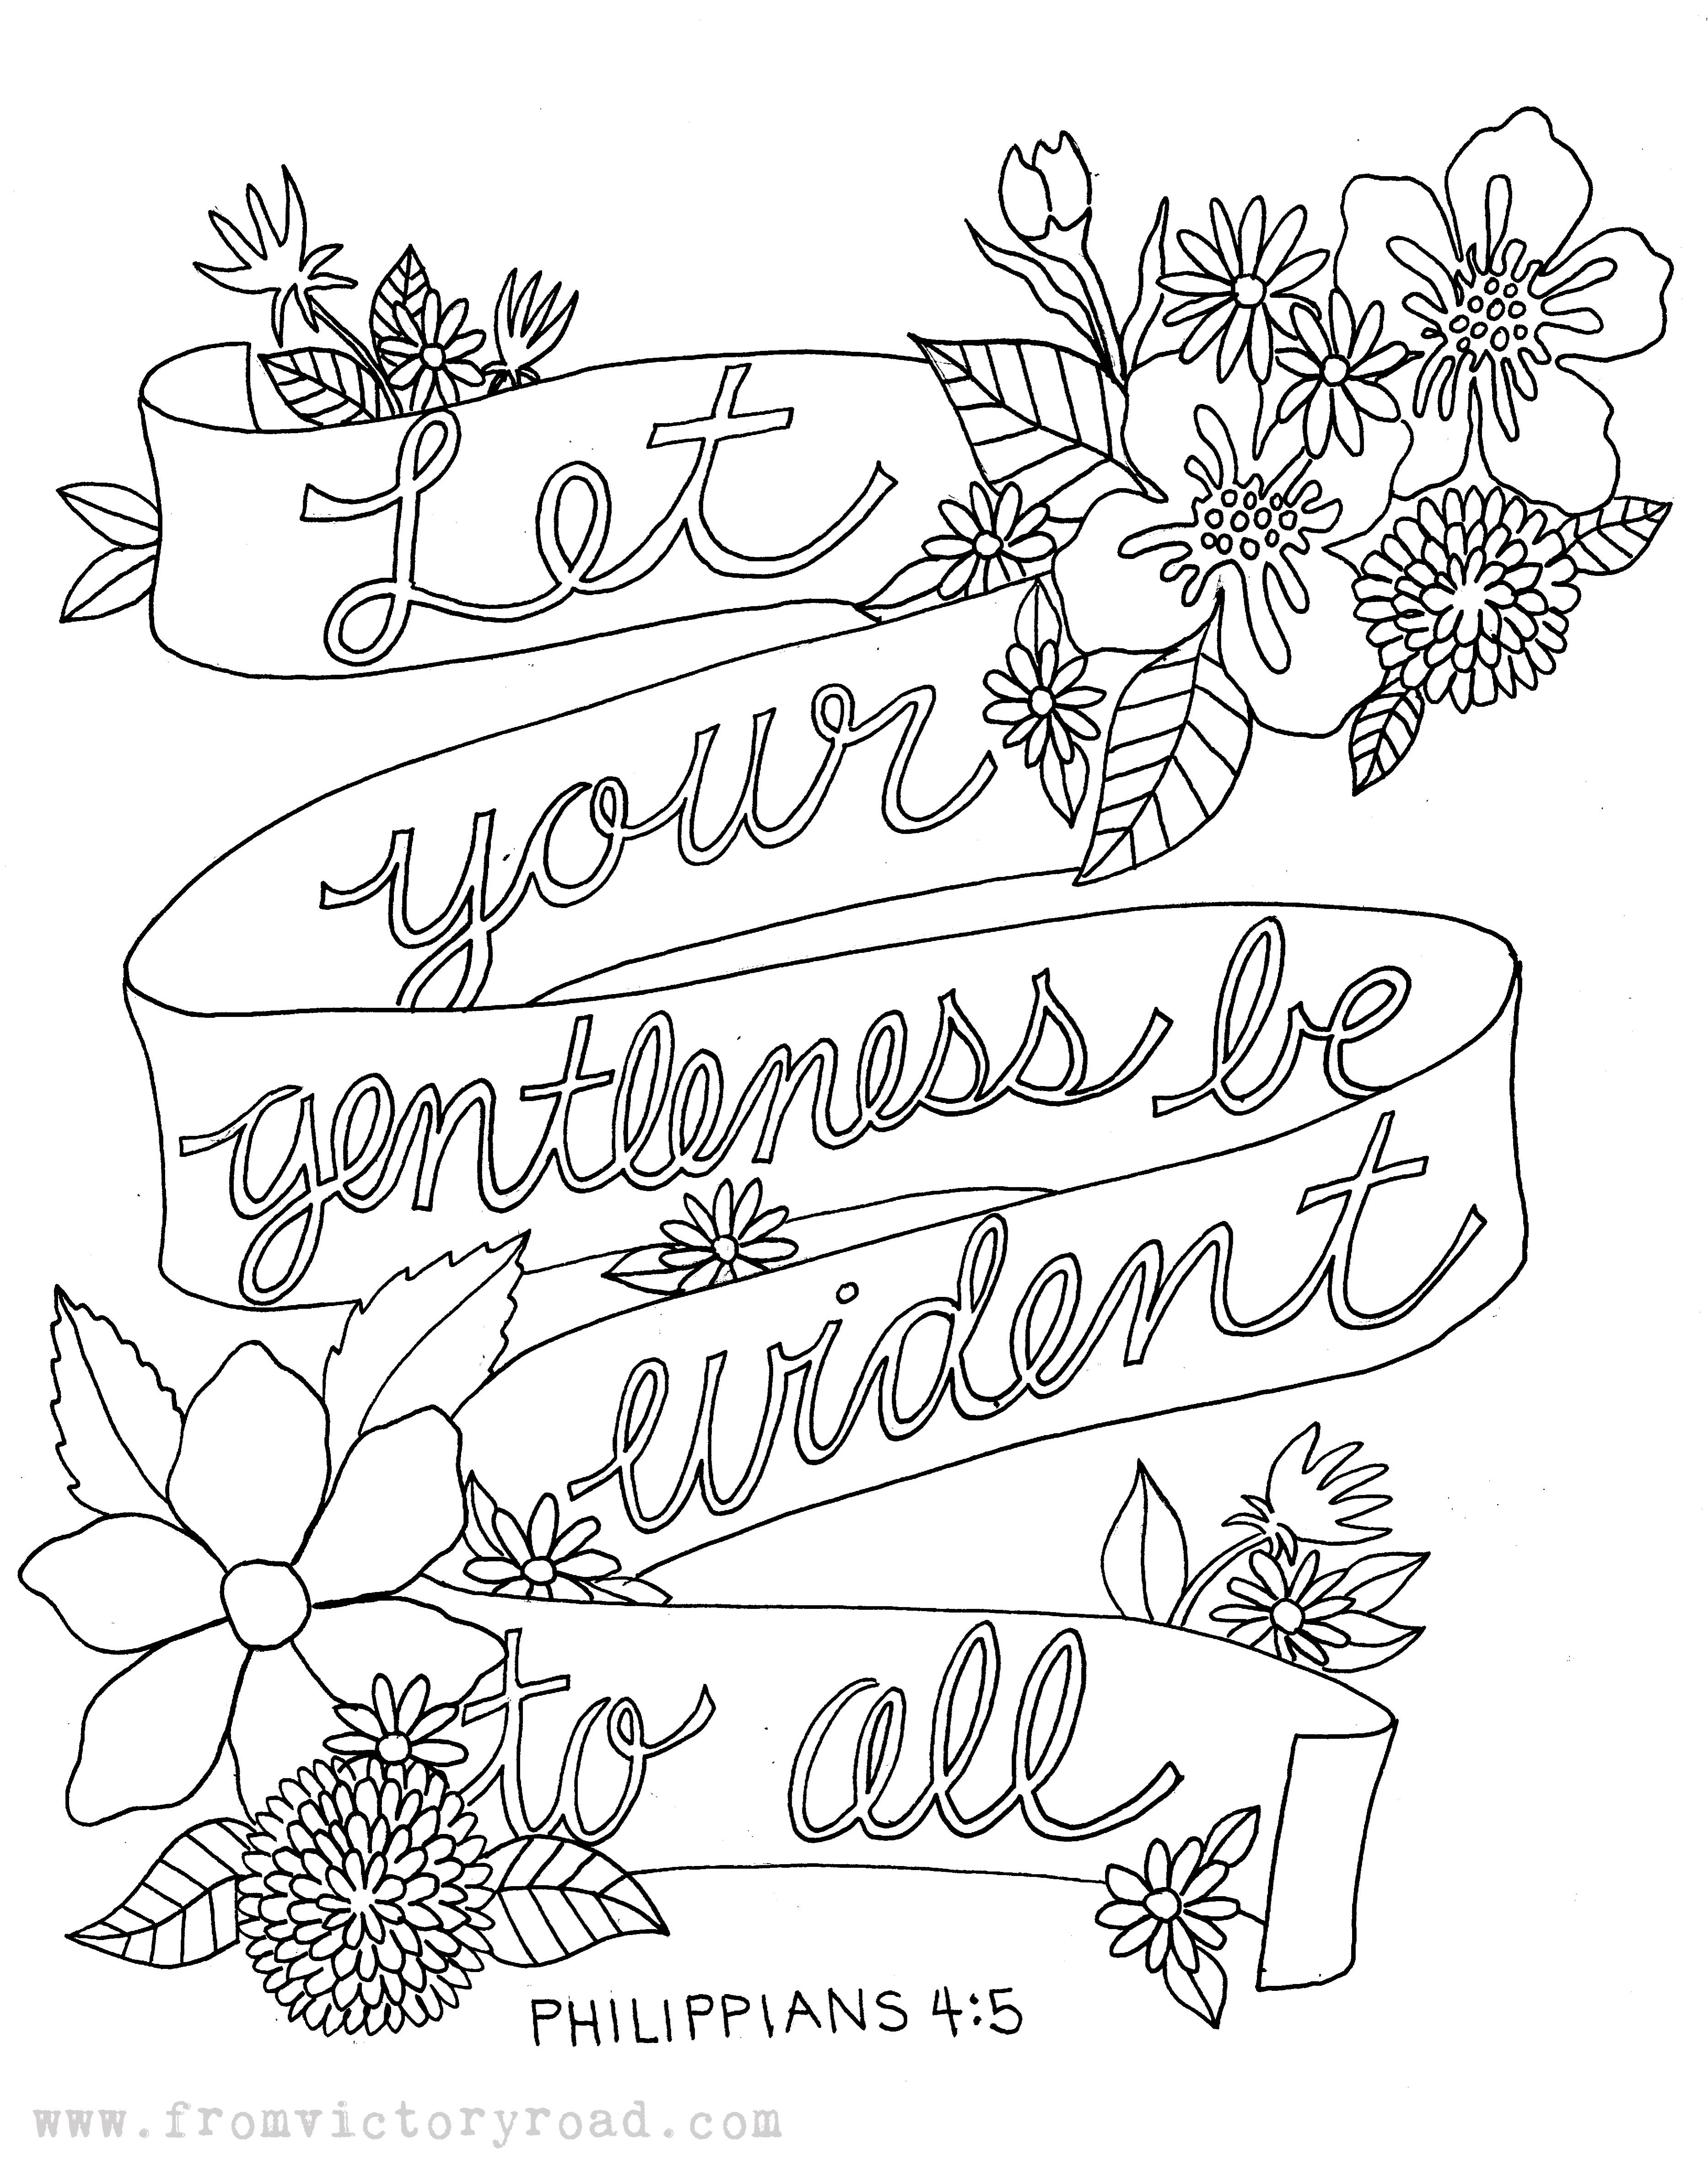 Feb 17 2014 Titus 3 2 Coloring Page Bible Coloring Pages Bible